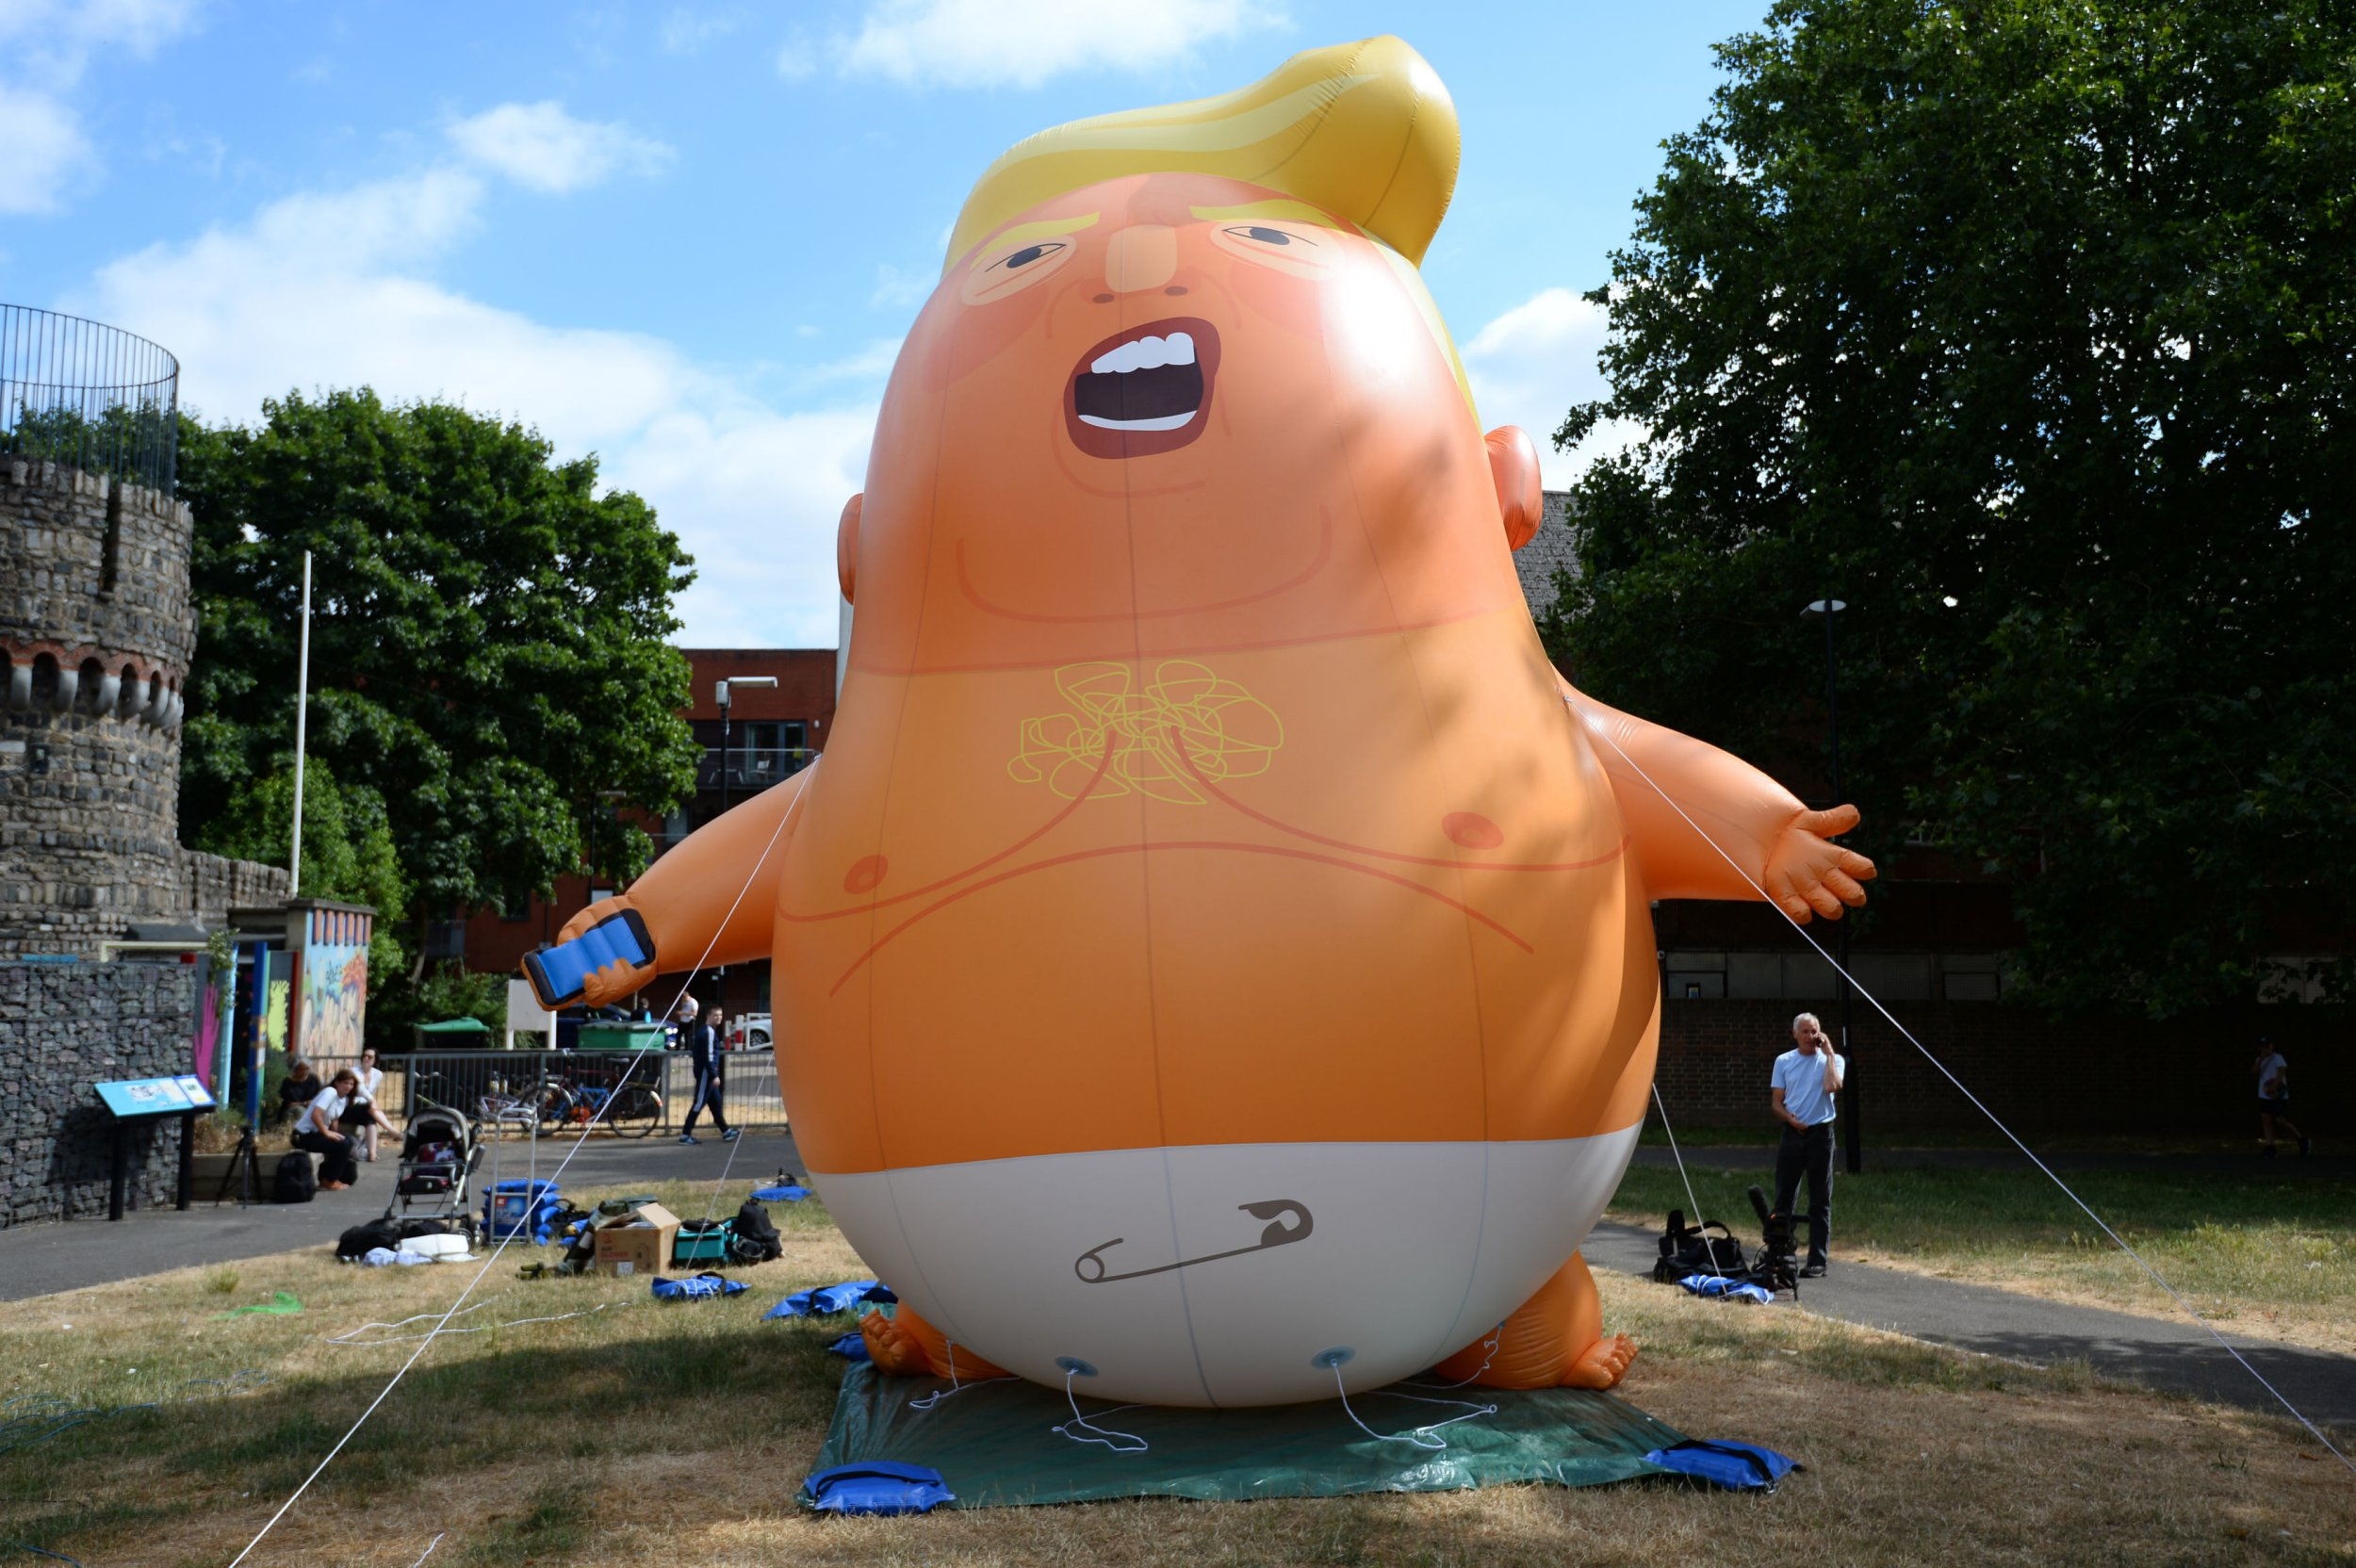 The Trump Baby Blimp is inflated during a practice test, at Bingfield Park in north London. PRESS ASSOCIATION Photo. Picture date: Tuesday July 10, 2018. The six-metre high blow-up caricature depicting Mr Trump as a baby wearing a nappy and clutching a mobile phone was given the green light by the Greater London Authority to fly near Parliament. Photo credit should read: Kirsty O'Connor/PA Wire